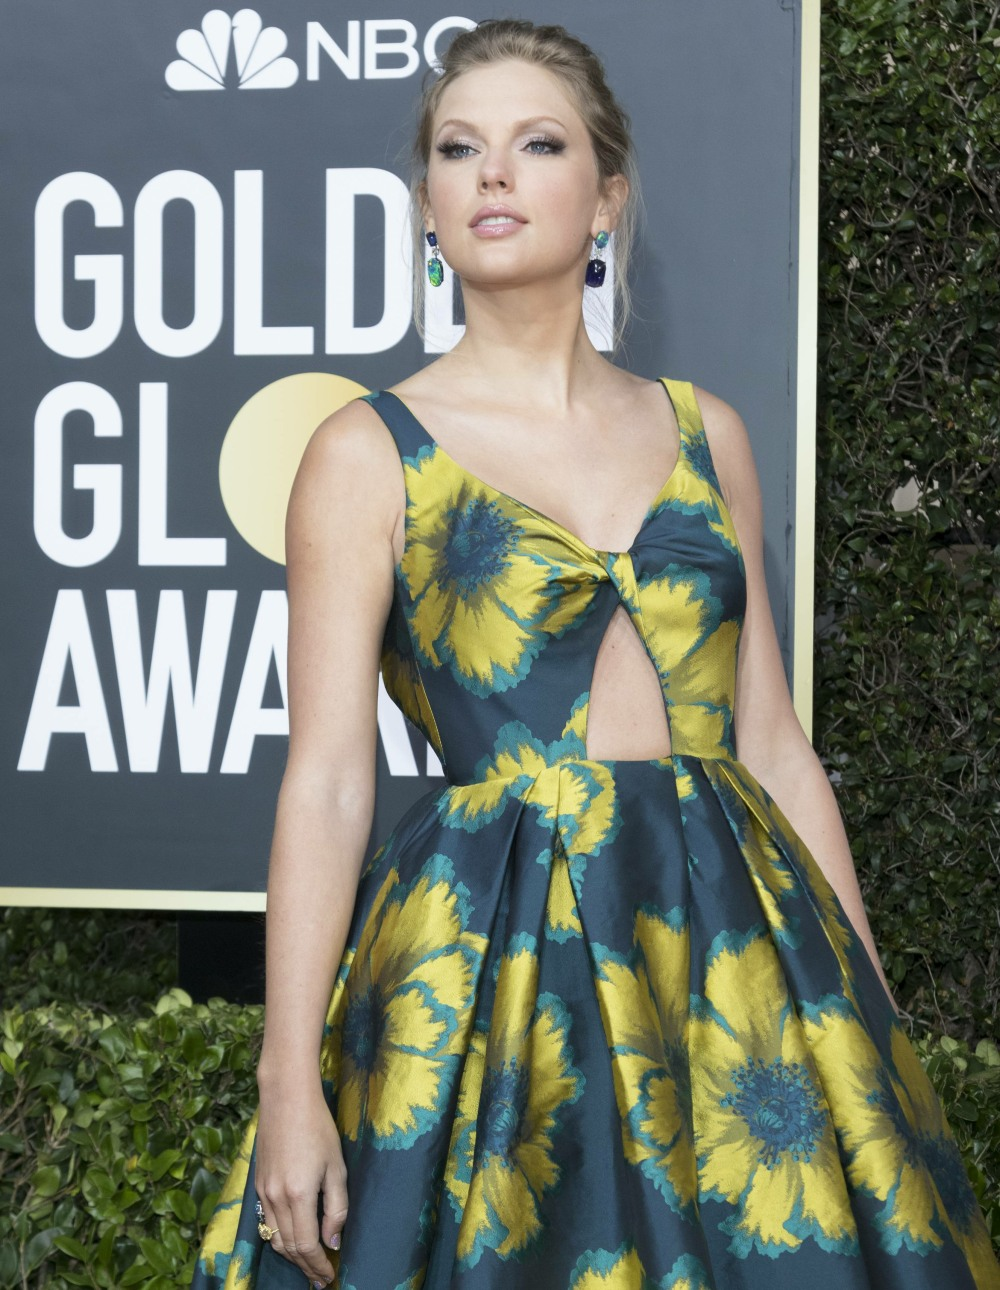 Taylor Swift attends the 77th Annual Golden Globe Awards, Golden Globes, at Hotel Beverly Hilton in Beverly Hills, Los Angeles, USA, on 05 January 2020. | usage worldwide